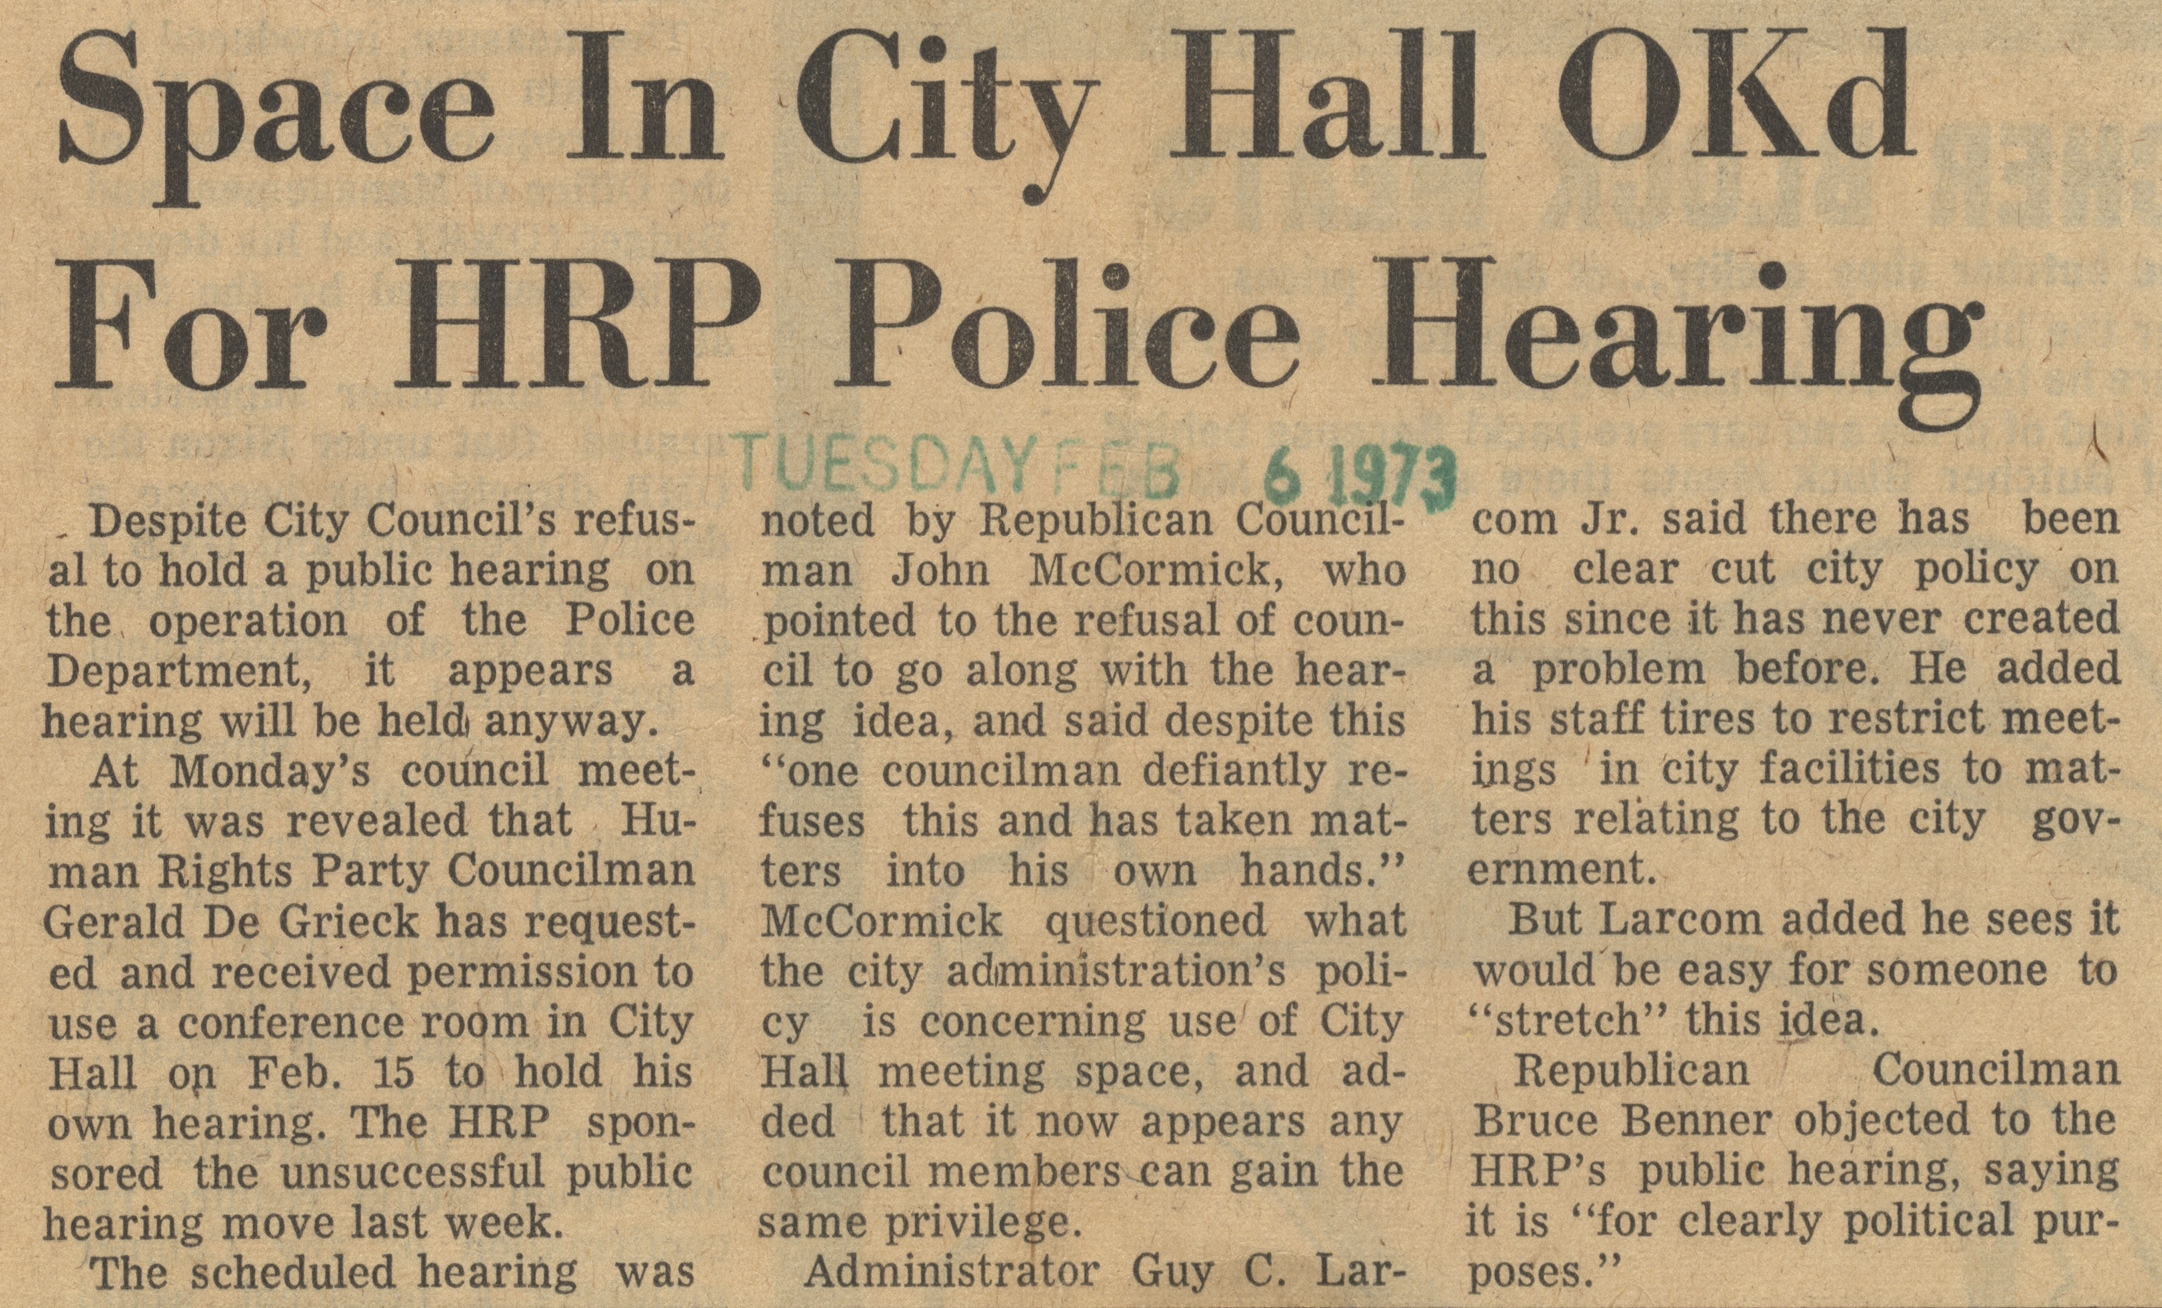 Space In City Hall OKd For HRP Police Hearing image